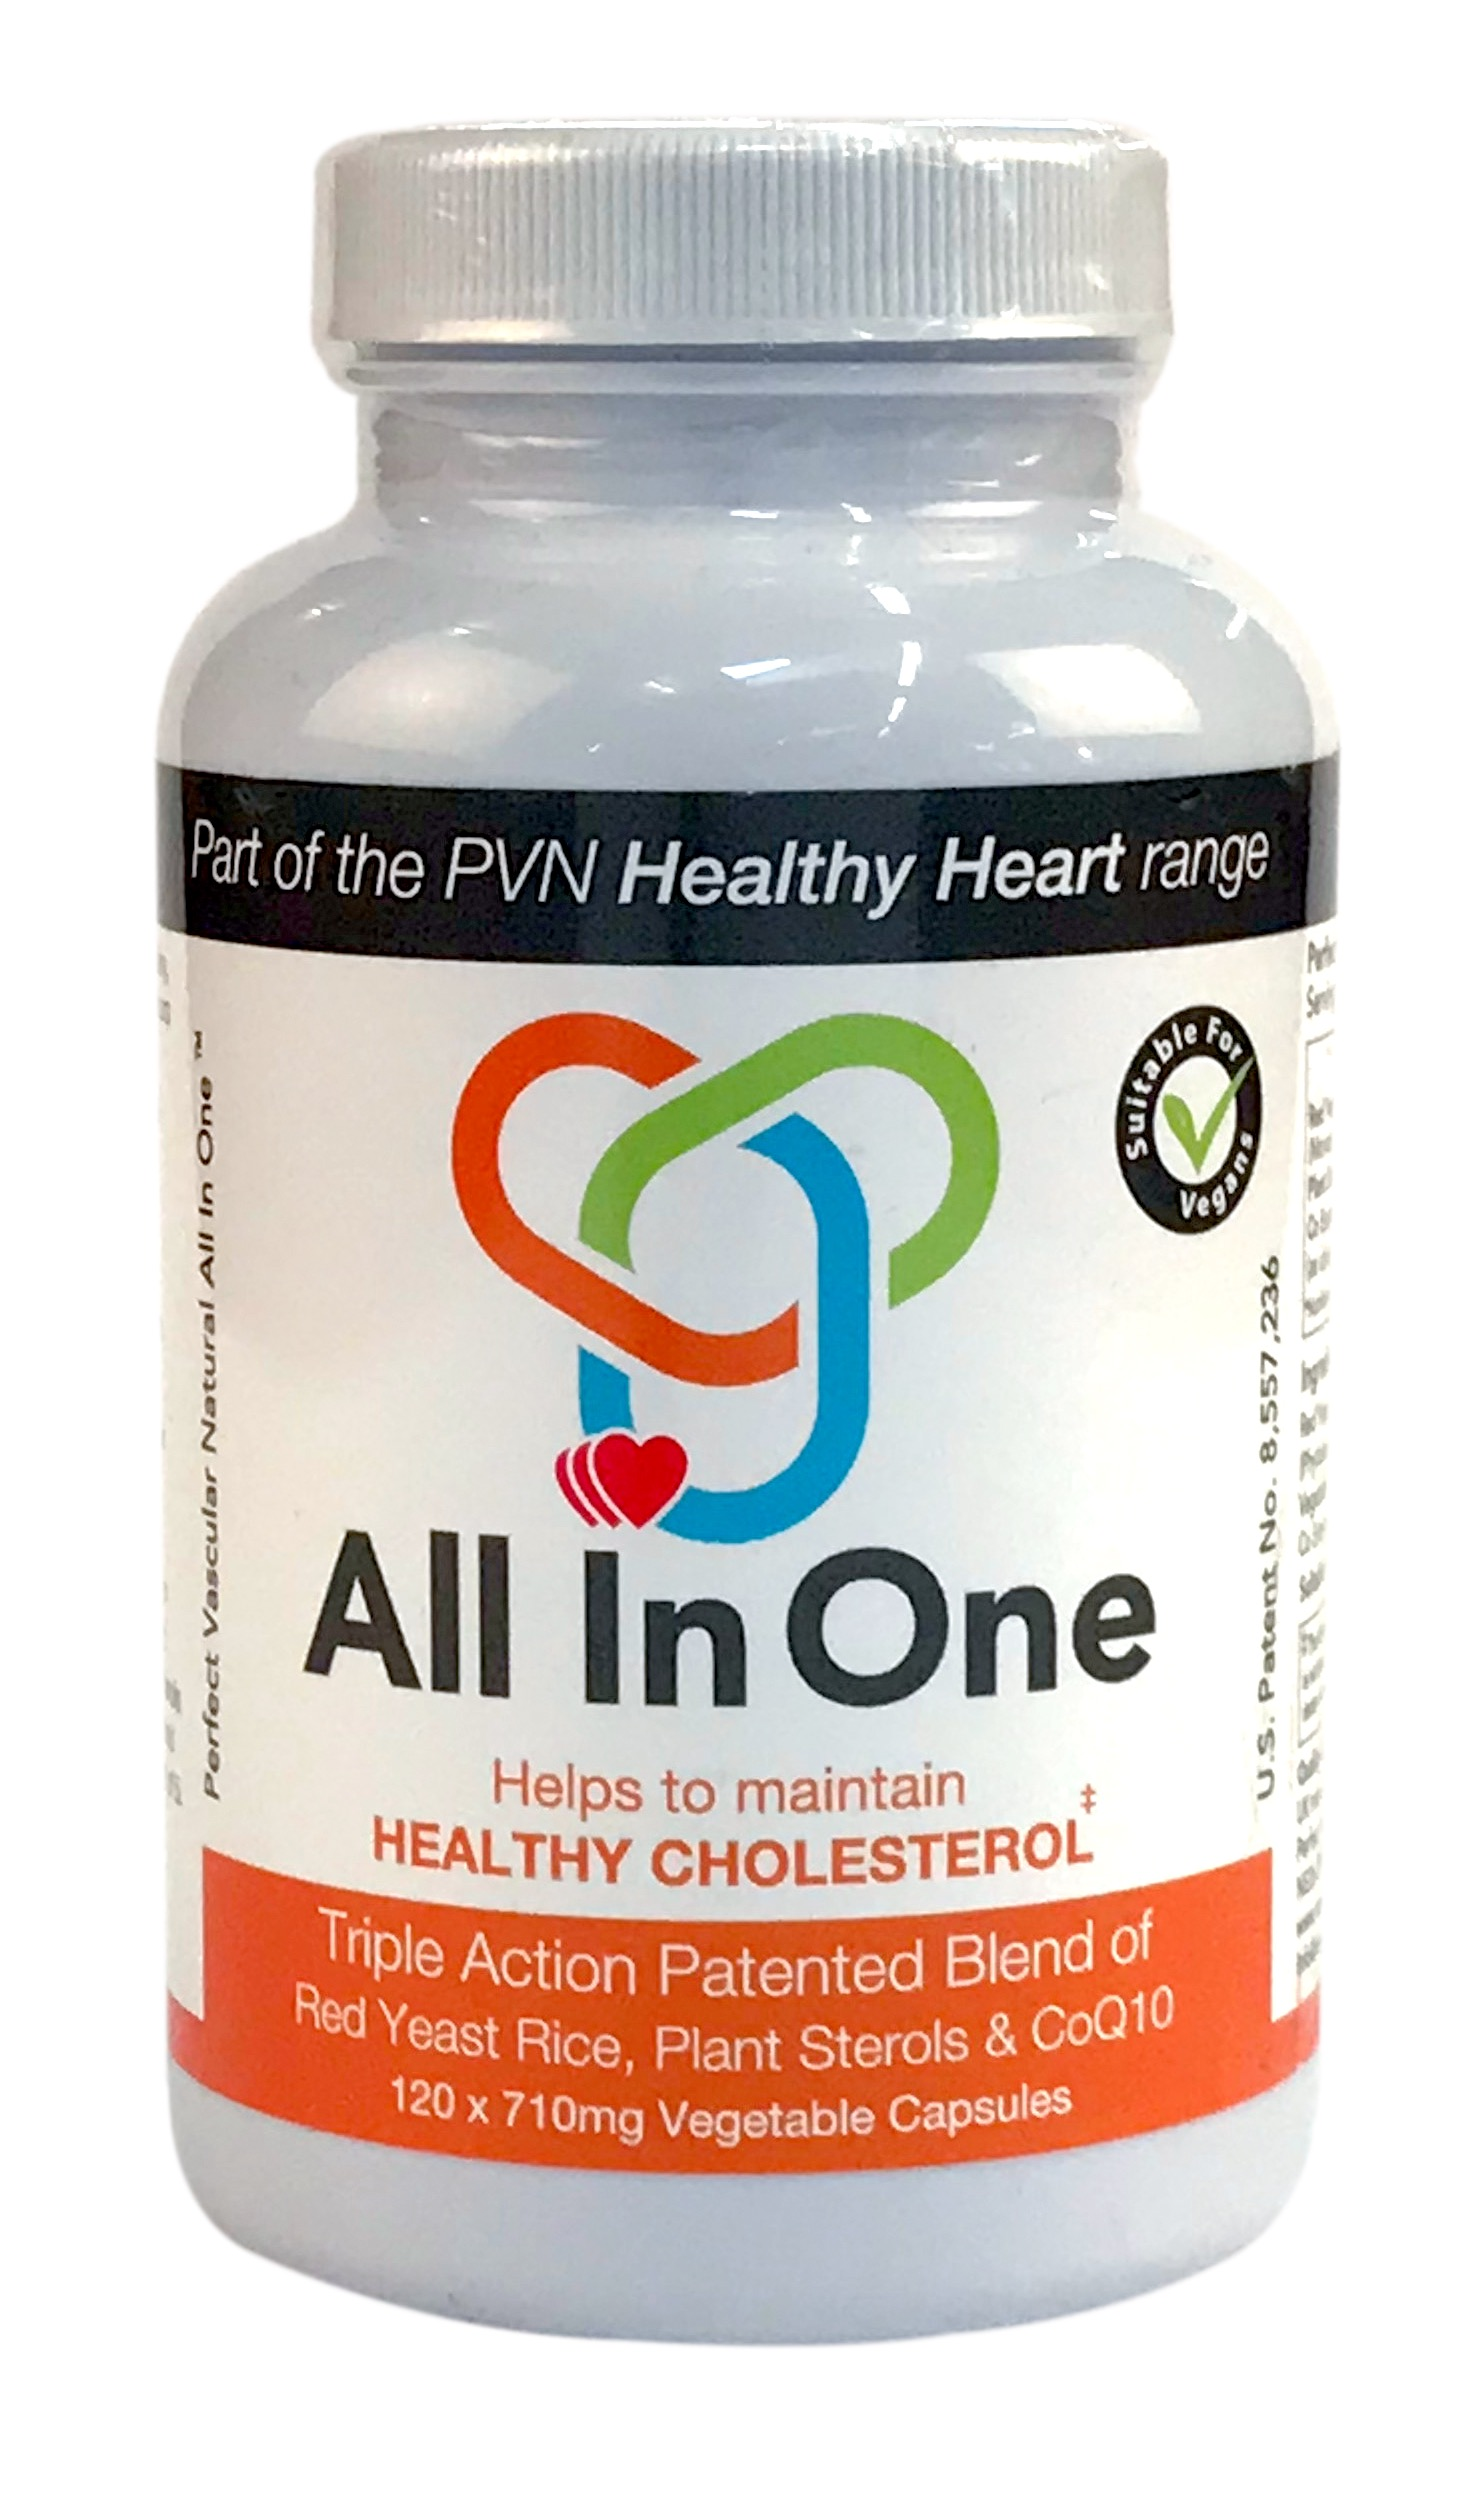 All in One Healthy Cholesterol 120's